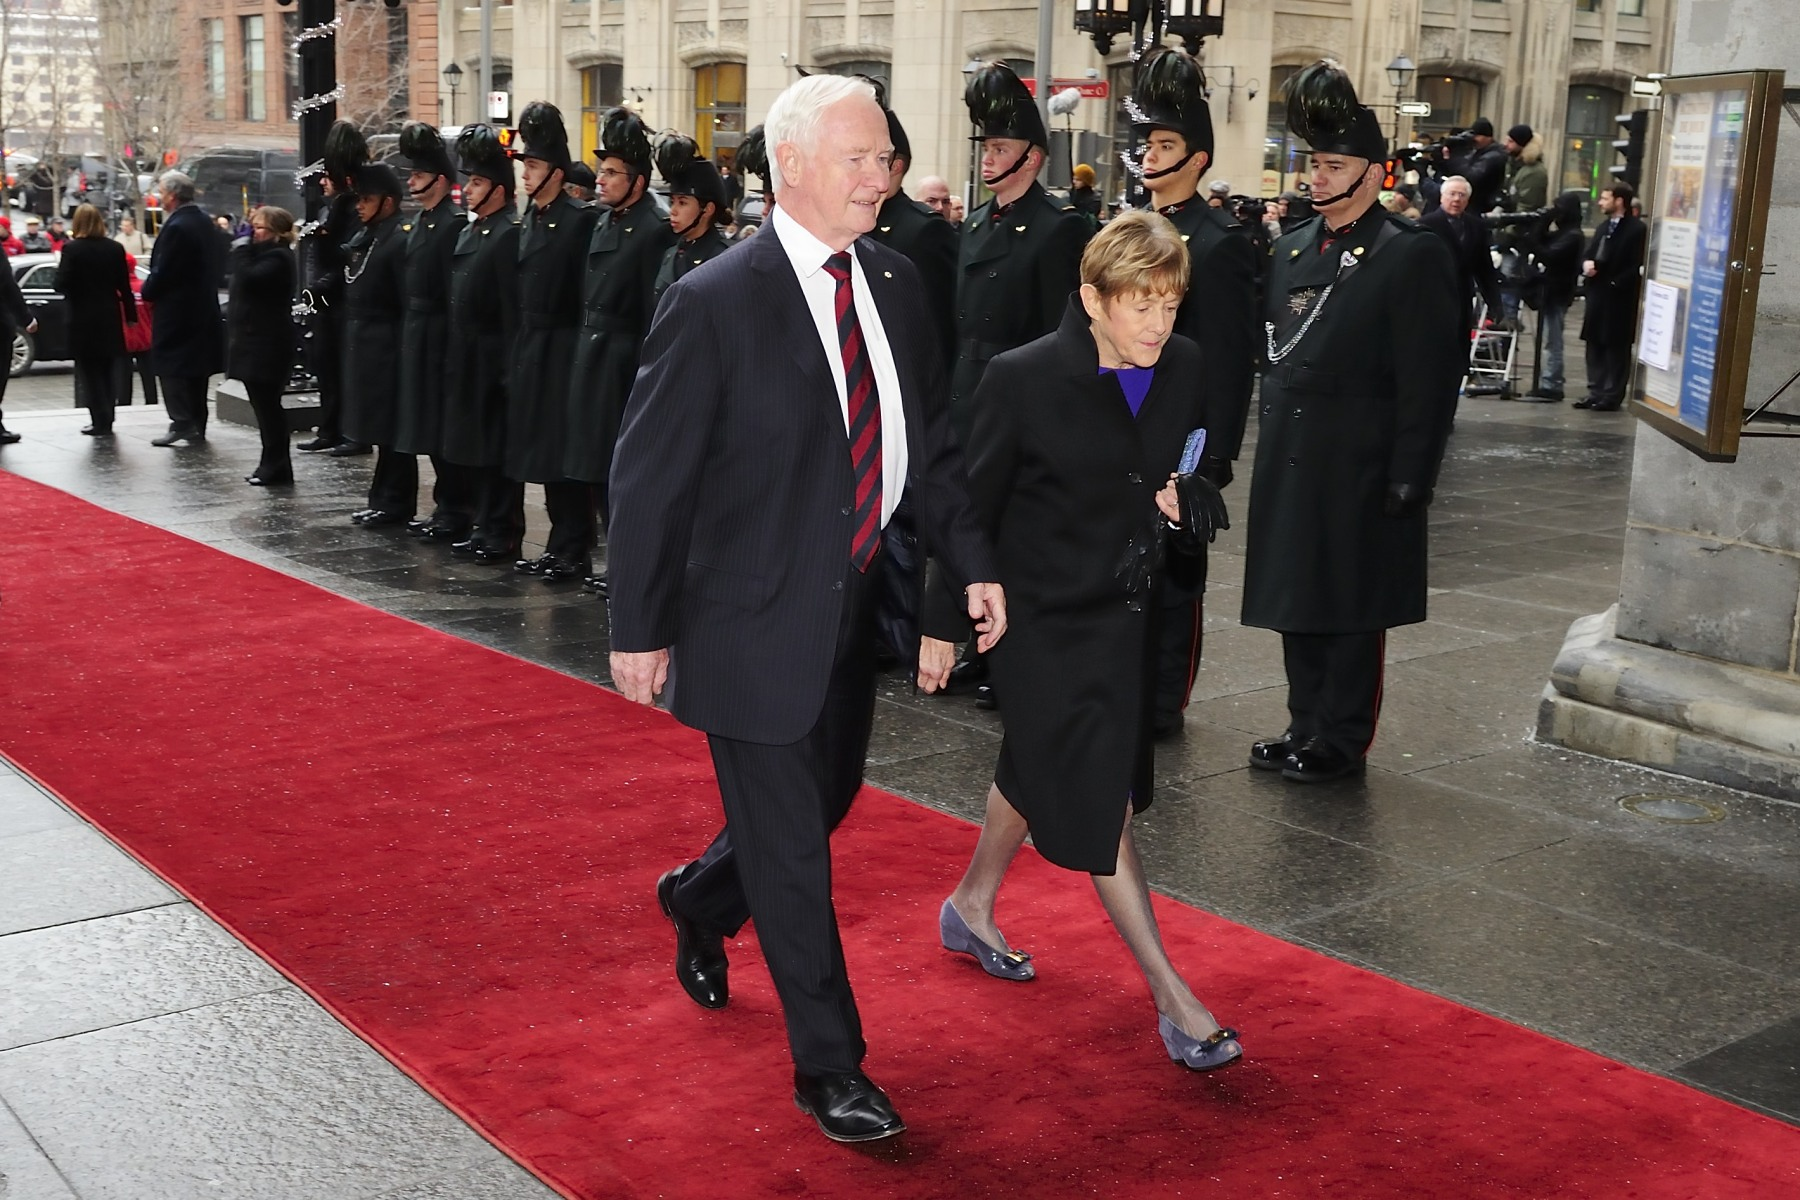 On December 3, 2013, Their Excellencies the Right Honourable David Johnston, Governor General of Canada, and Mrs. Sharon Johnston attended a commemorative ceremony for the late Paul G. Desmarais, P.C., C.C., O.Q.